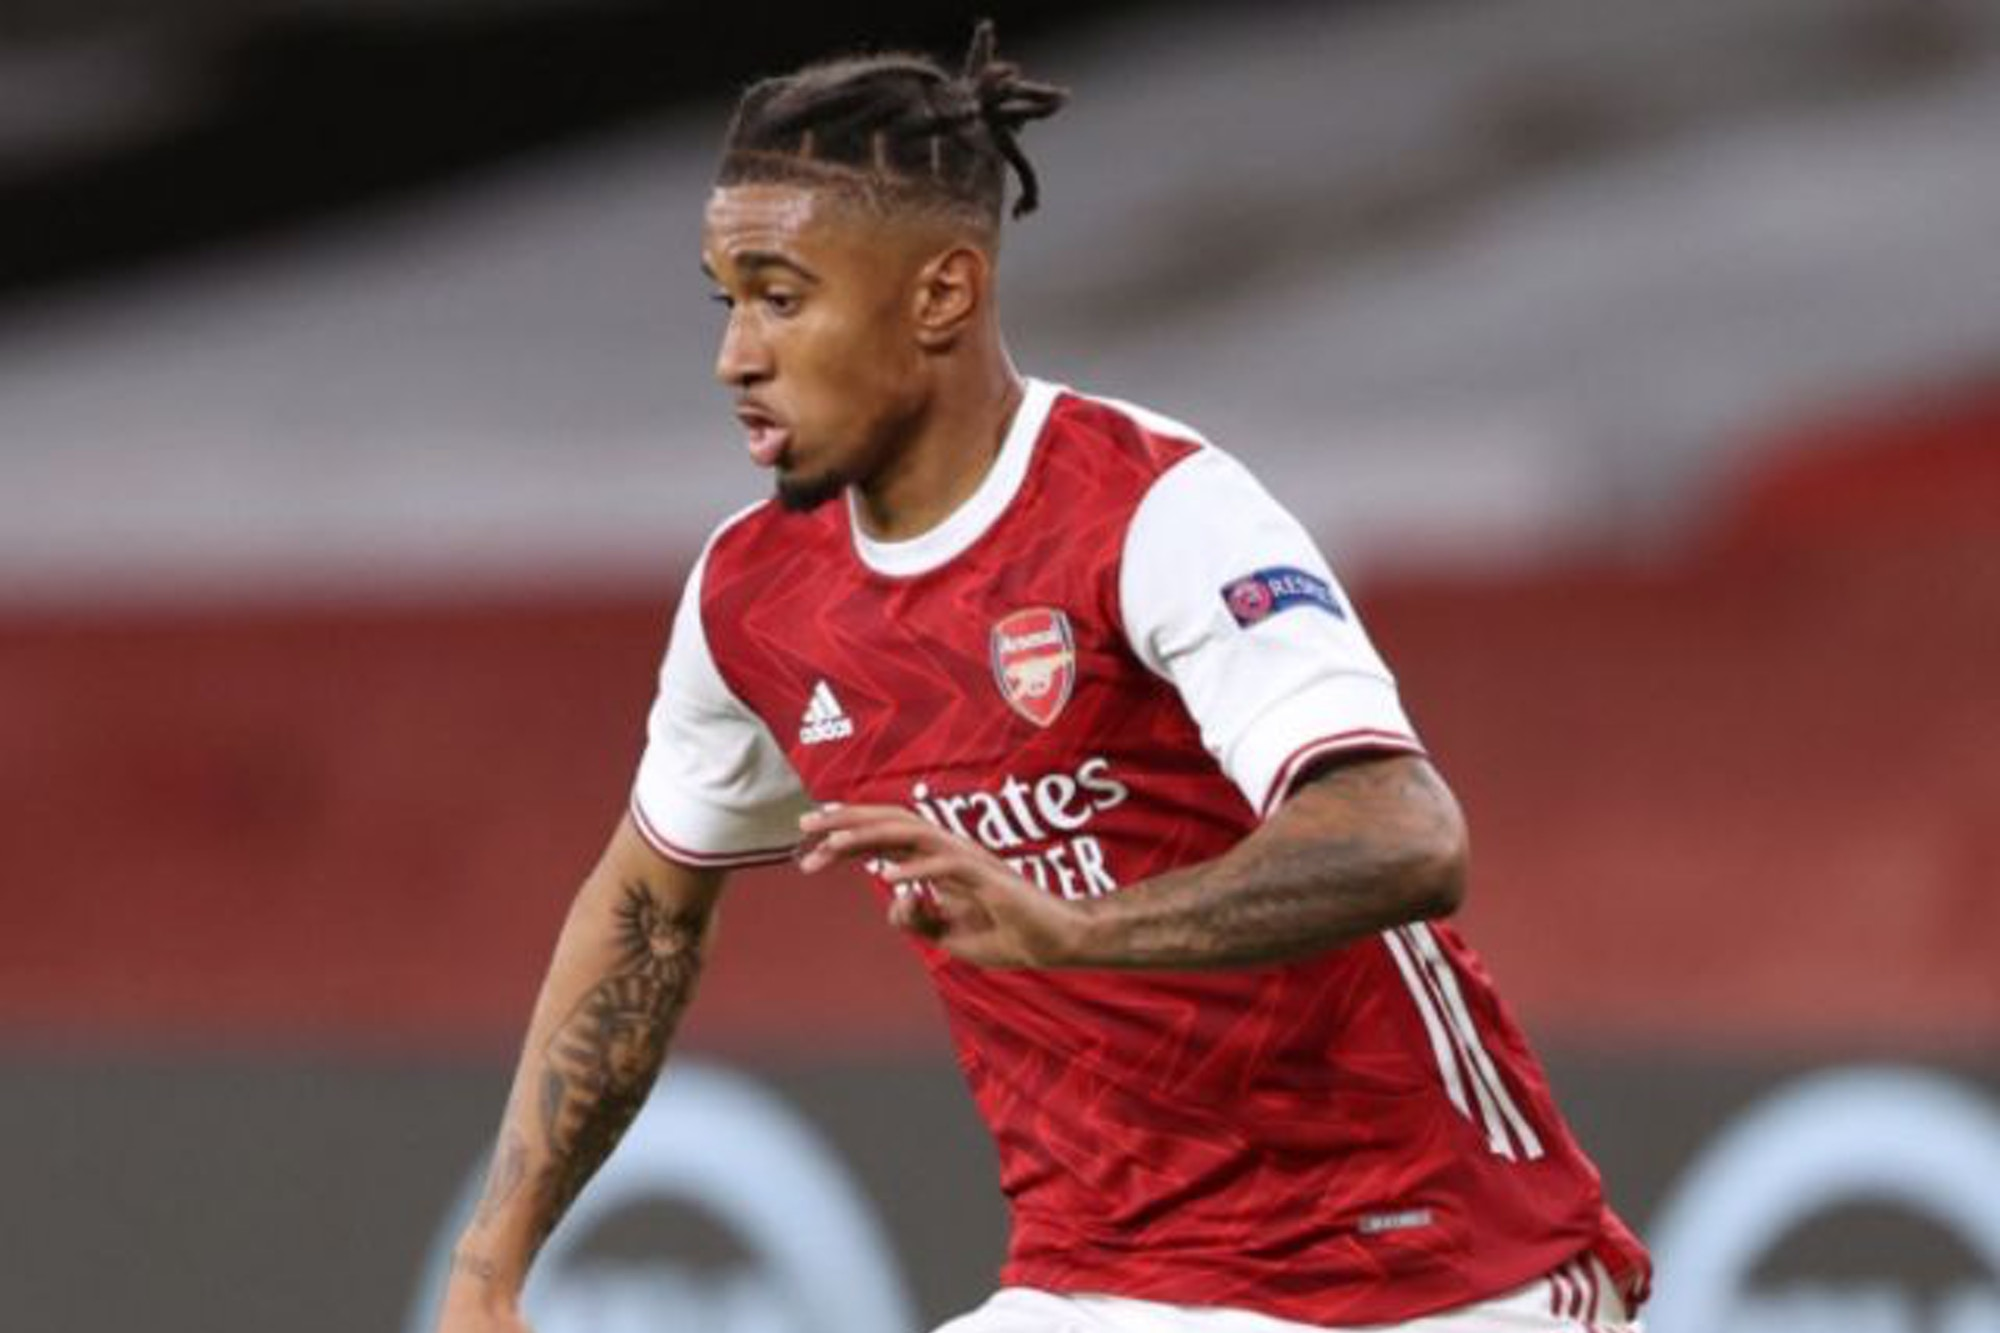 Arsenal will look to cash in on talented midfielder this summer